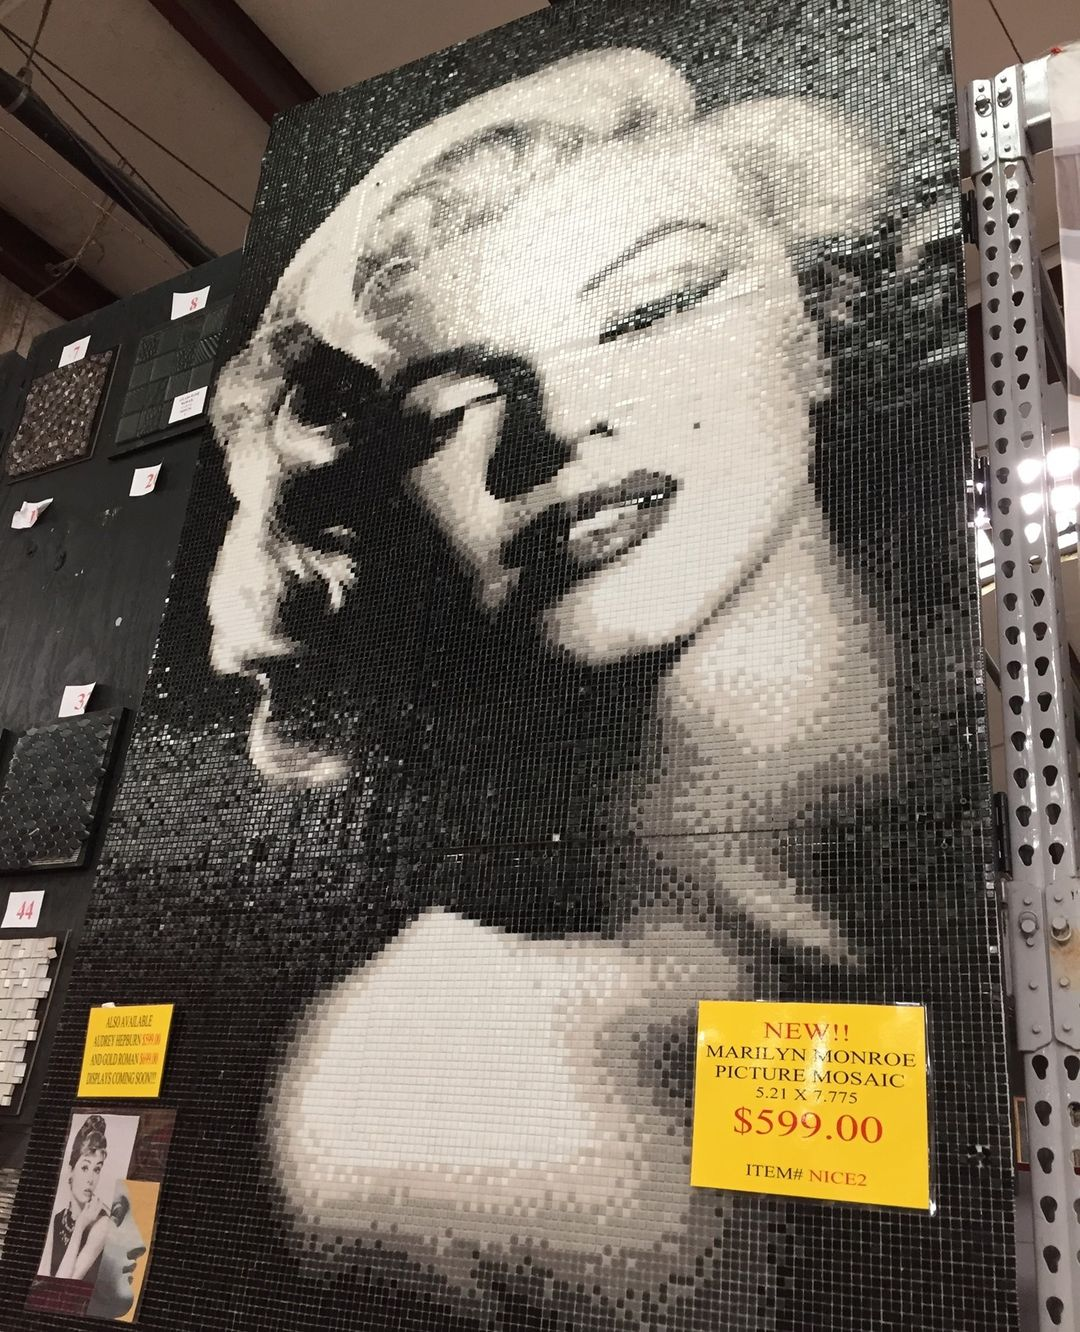 Add a bit of Hollywood glam in the form of an accent wall. This mosaic is BIG—she measures 5.21 'x 7.775'. These can be ordered by all stores from our Chattanooga location. We also have Audrey Hepburn and Roman styles!